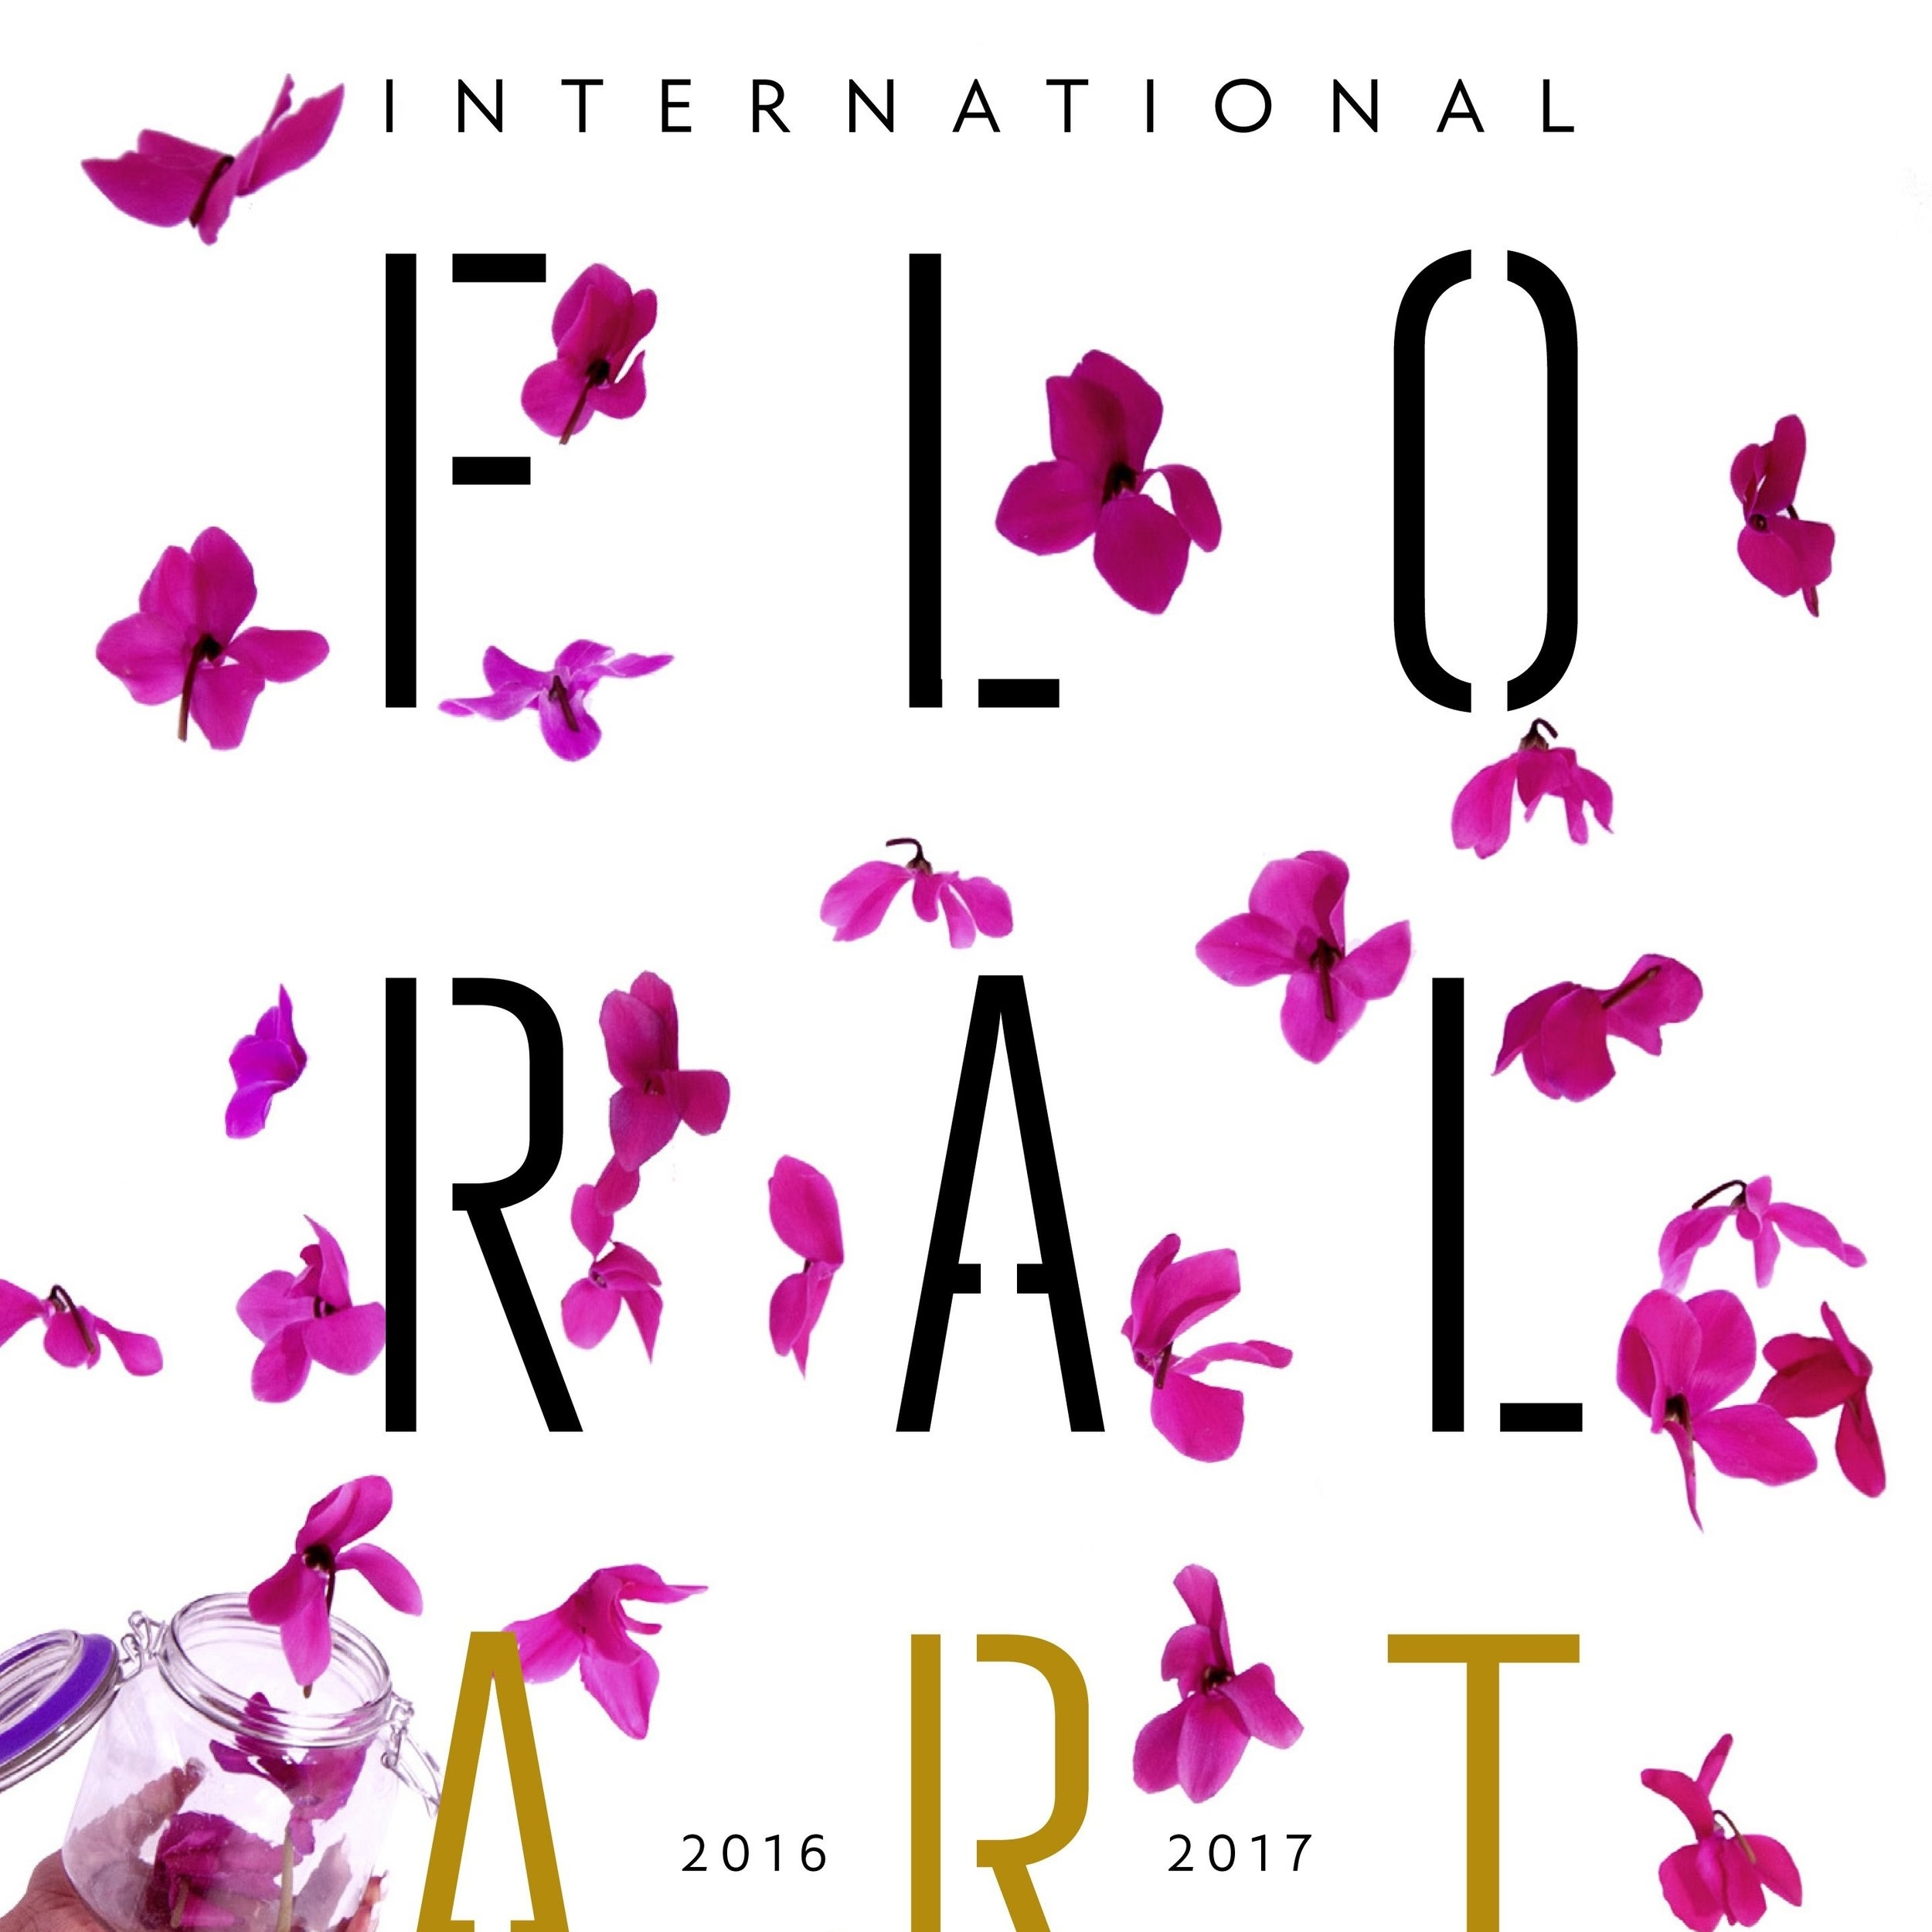 Floral ArtStichting Publishing - Hana Ami is supporting entries and helps with designing for the bi-annual International Floral Art Edition